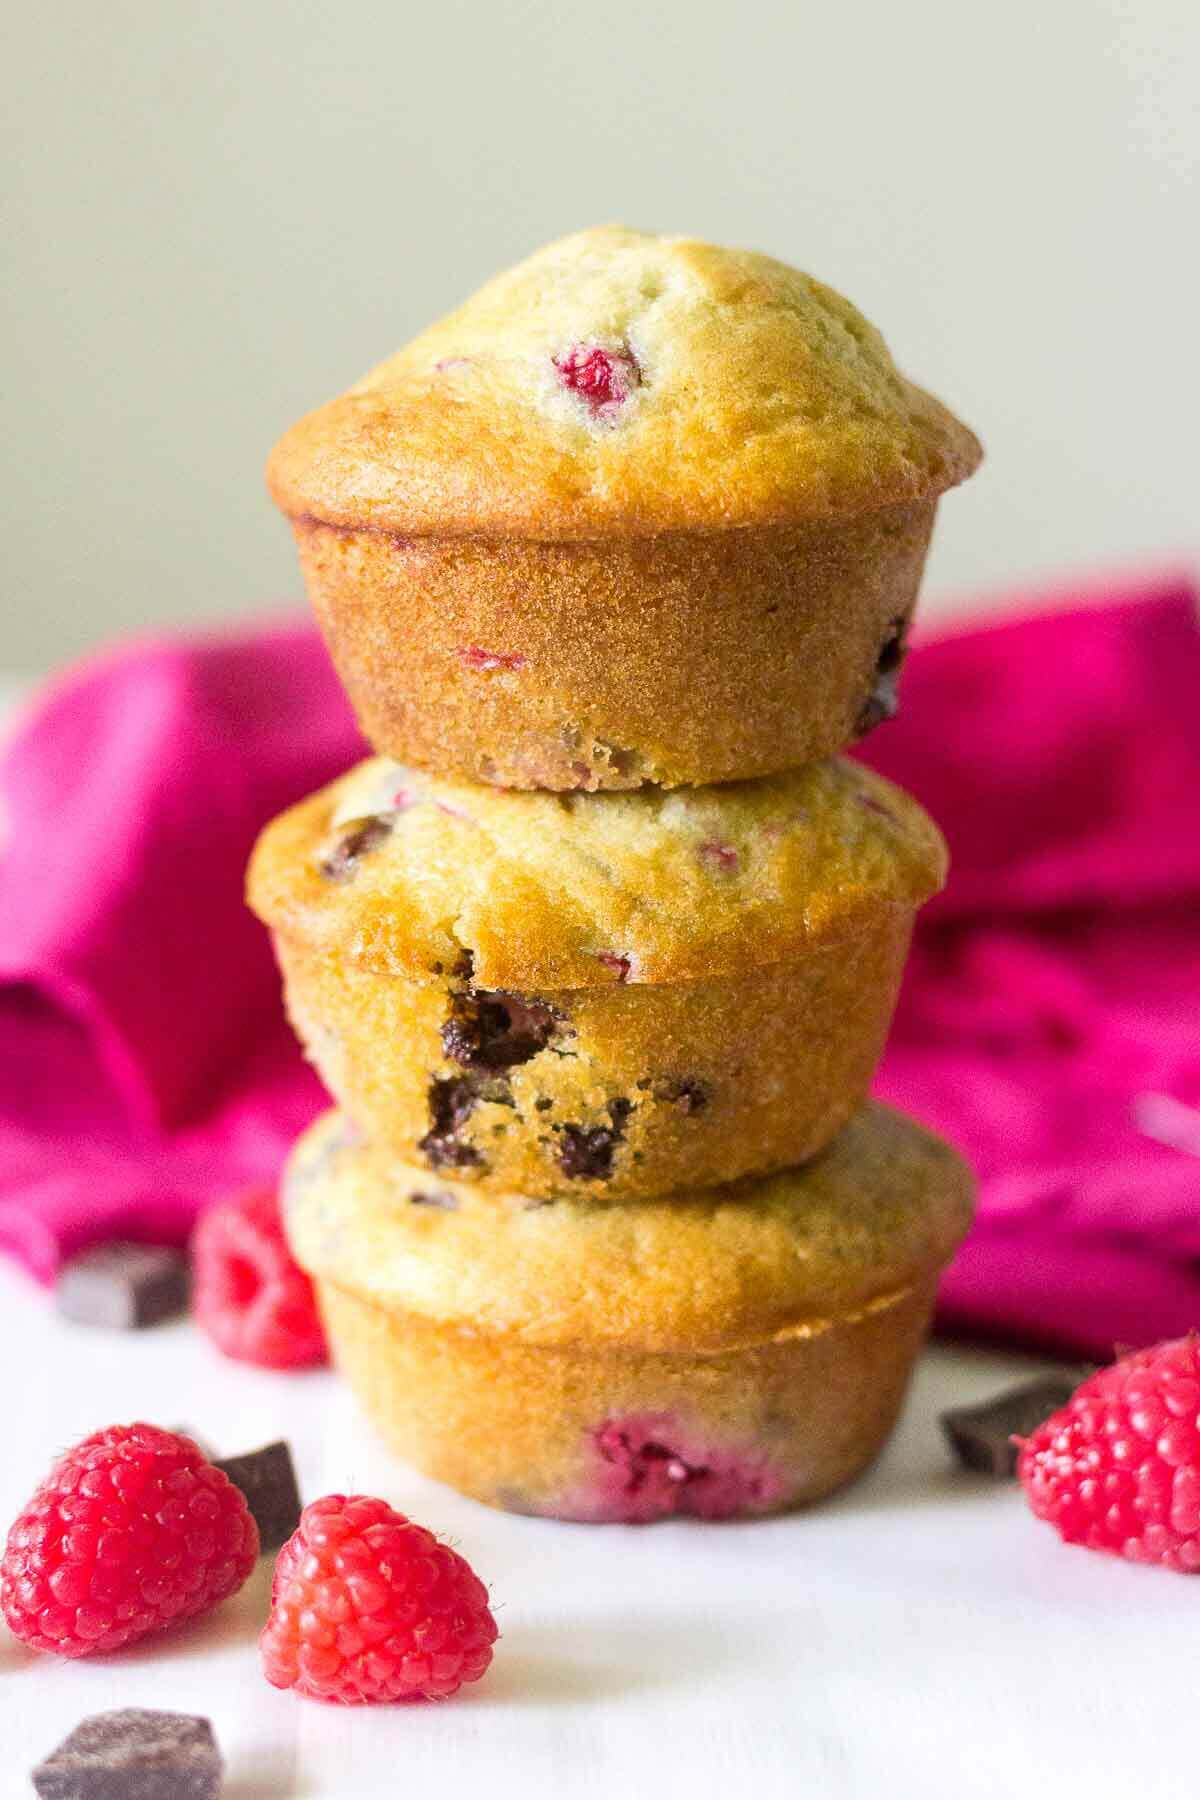 Soft and buttery muffins packed full of yummy ingredients! These Raspberry Chocolate Chunk Muffins will make your next Monday mornings the best yet. The melty chocolate oozes with each bite and the raspberries burst with flavor.